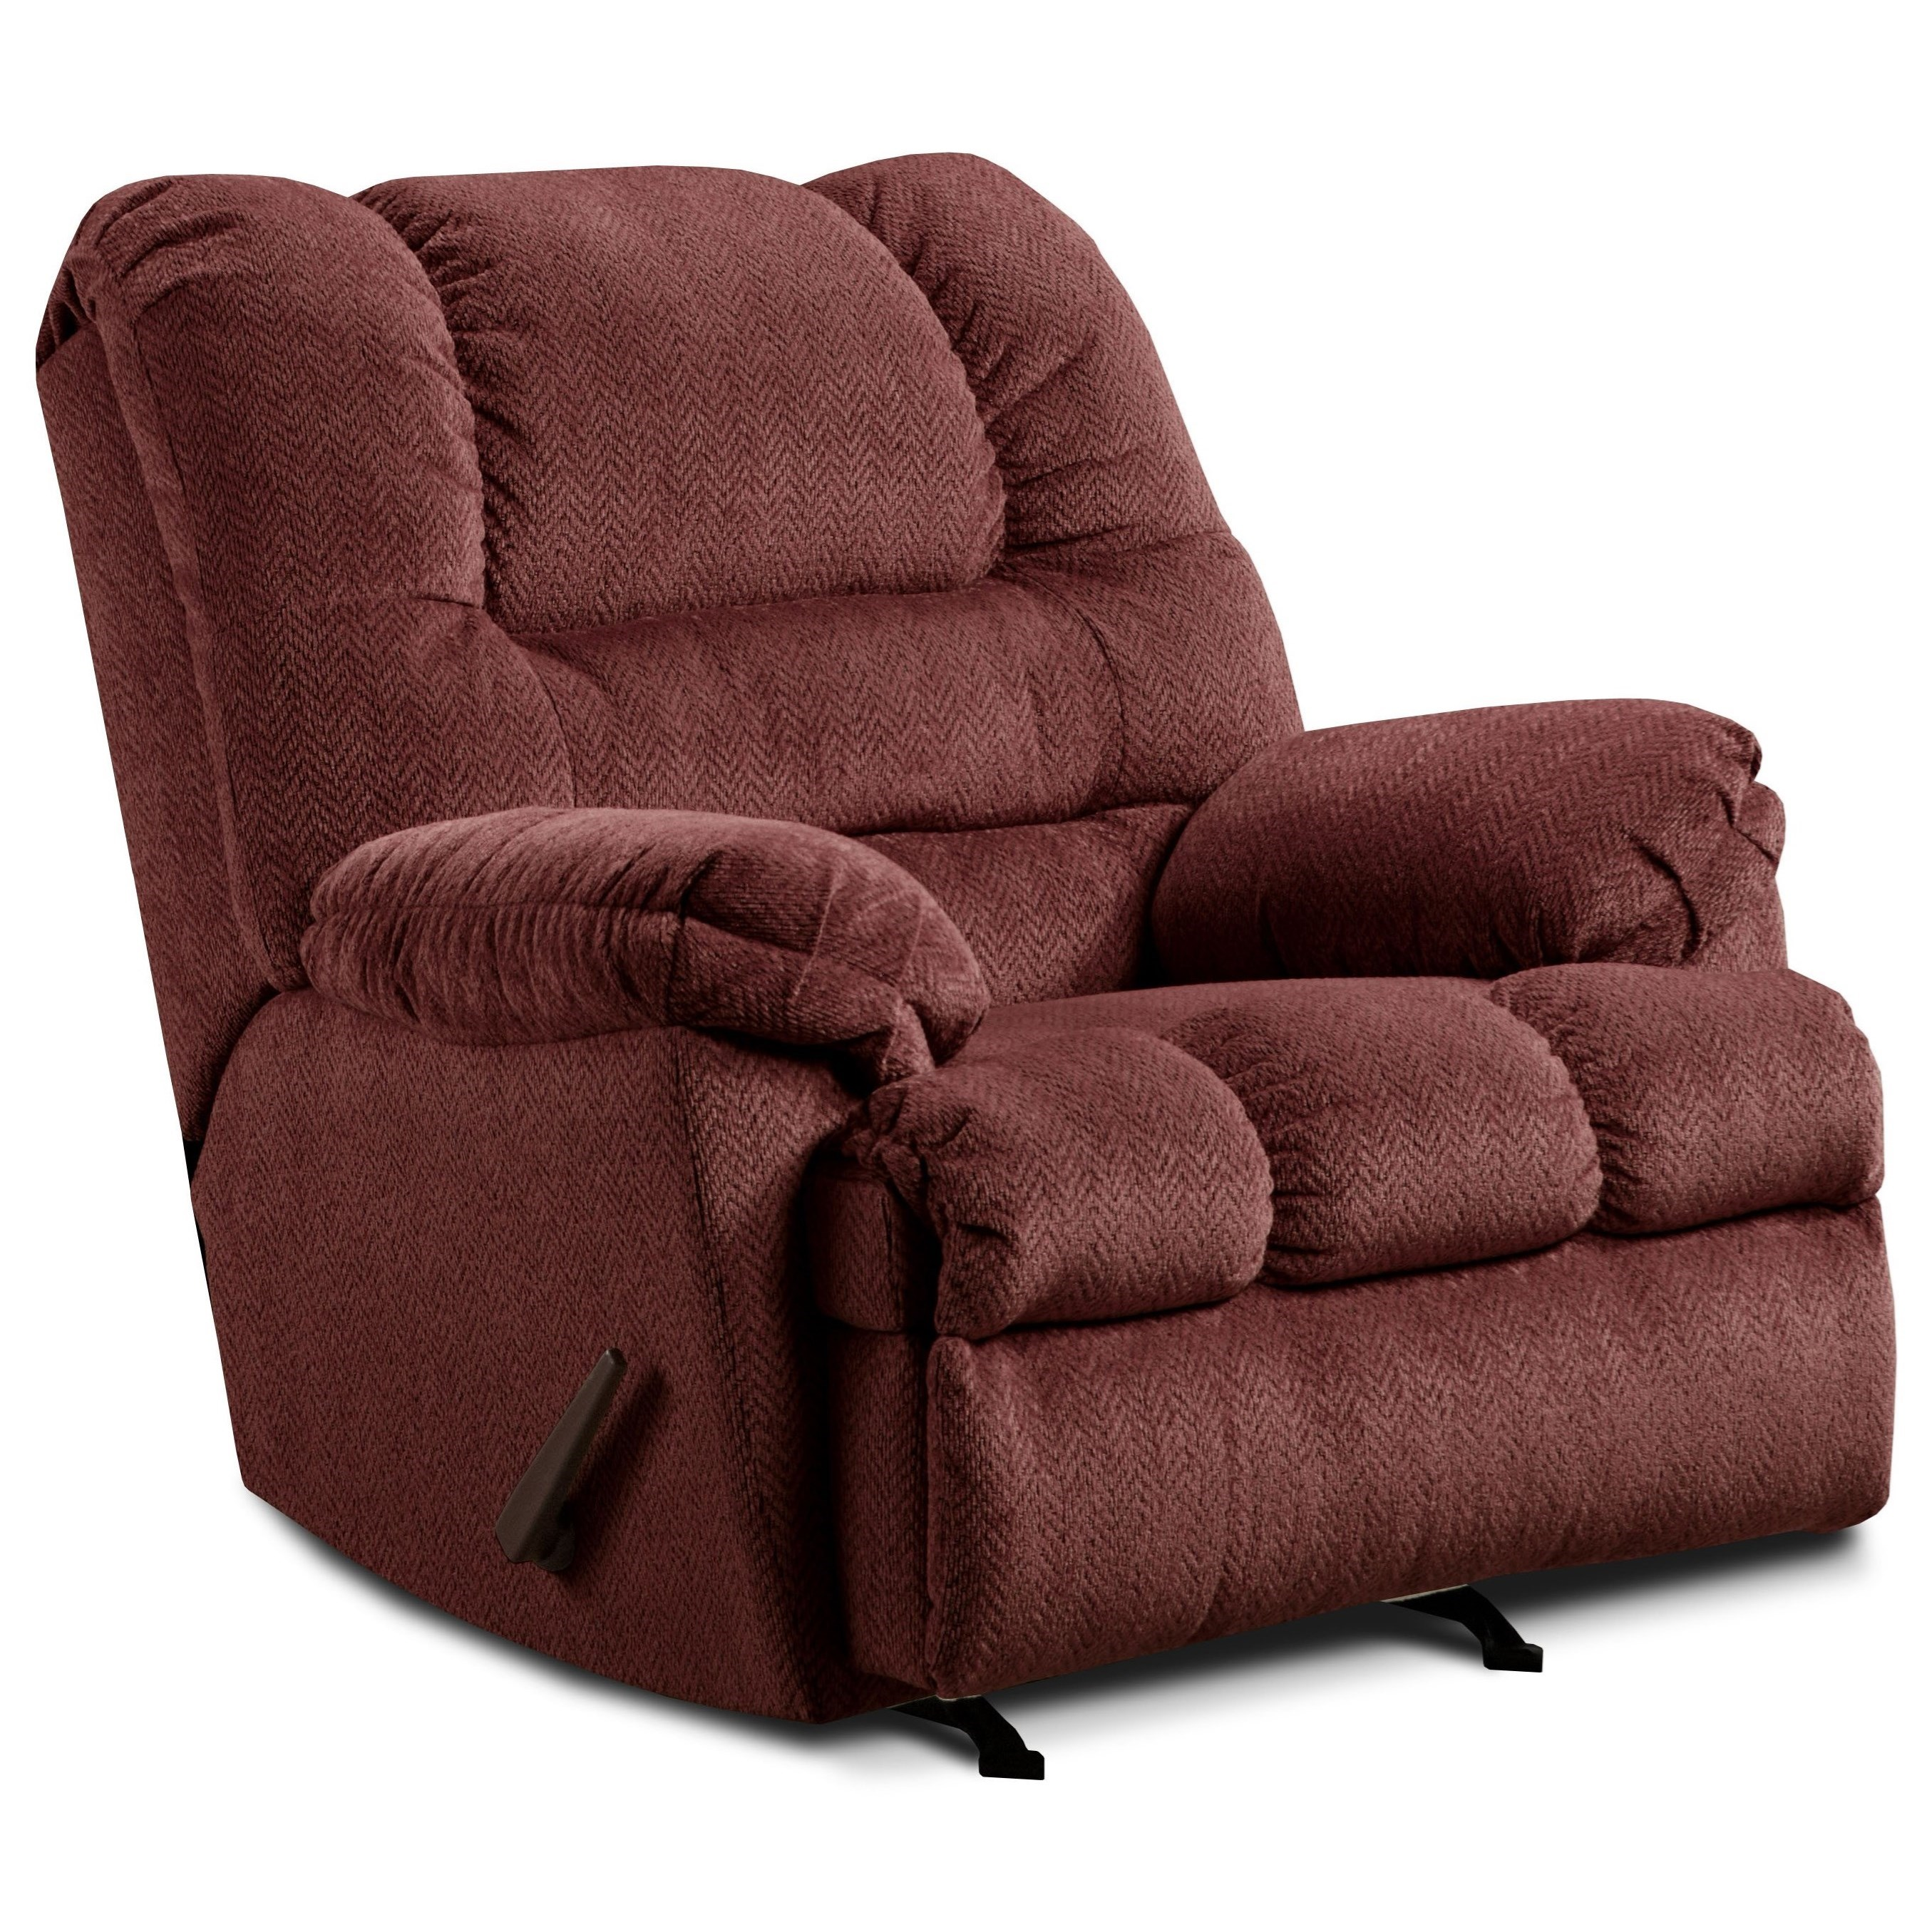 United Furniture Industries 600 Casual Oversized Power Rocker Recliner - Item Number: 600-P-Zig Zag Wine